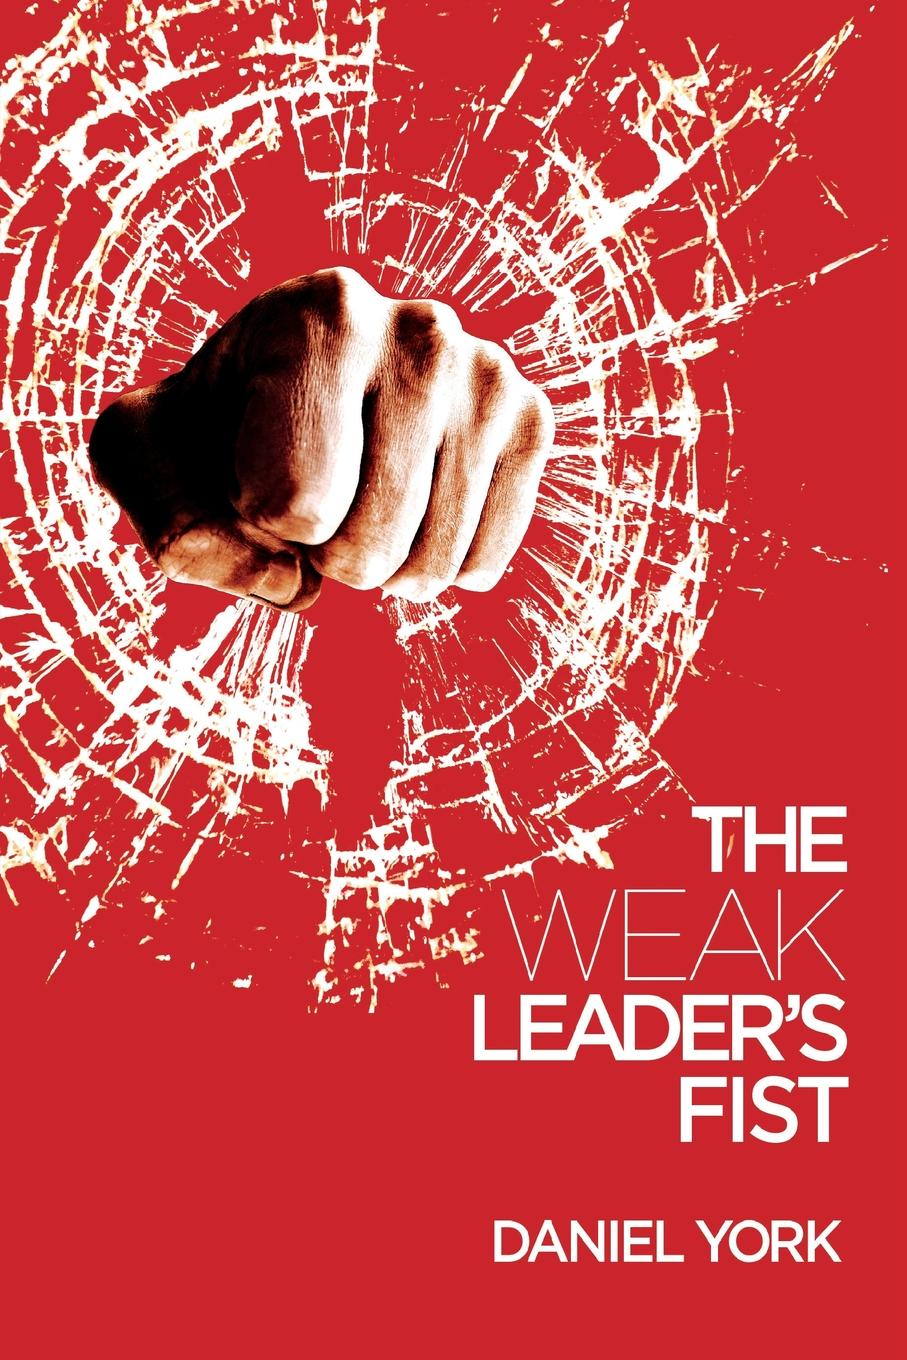 Daniel York The Weak Leader.s Fist. 6 NONESSENTIAL ELEMENTS EVERY LEADER MUST UNMASTER mike adams seven stories every salesperson must tell